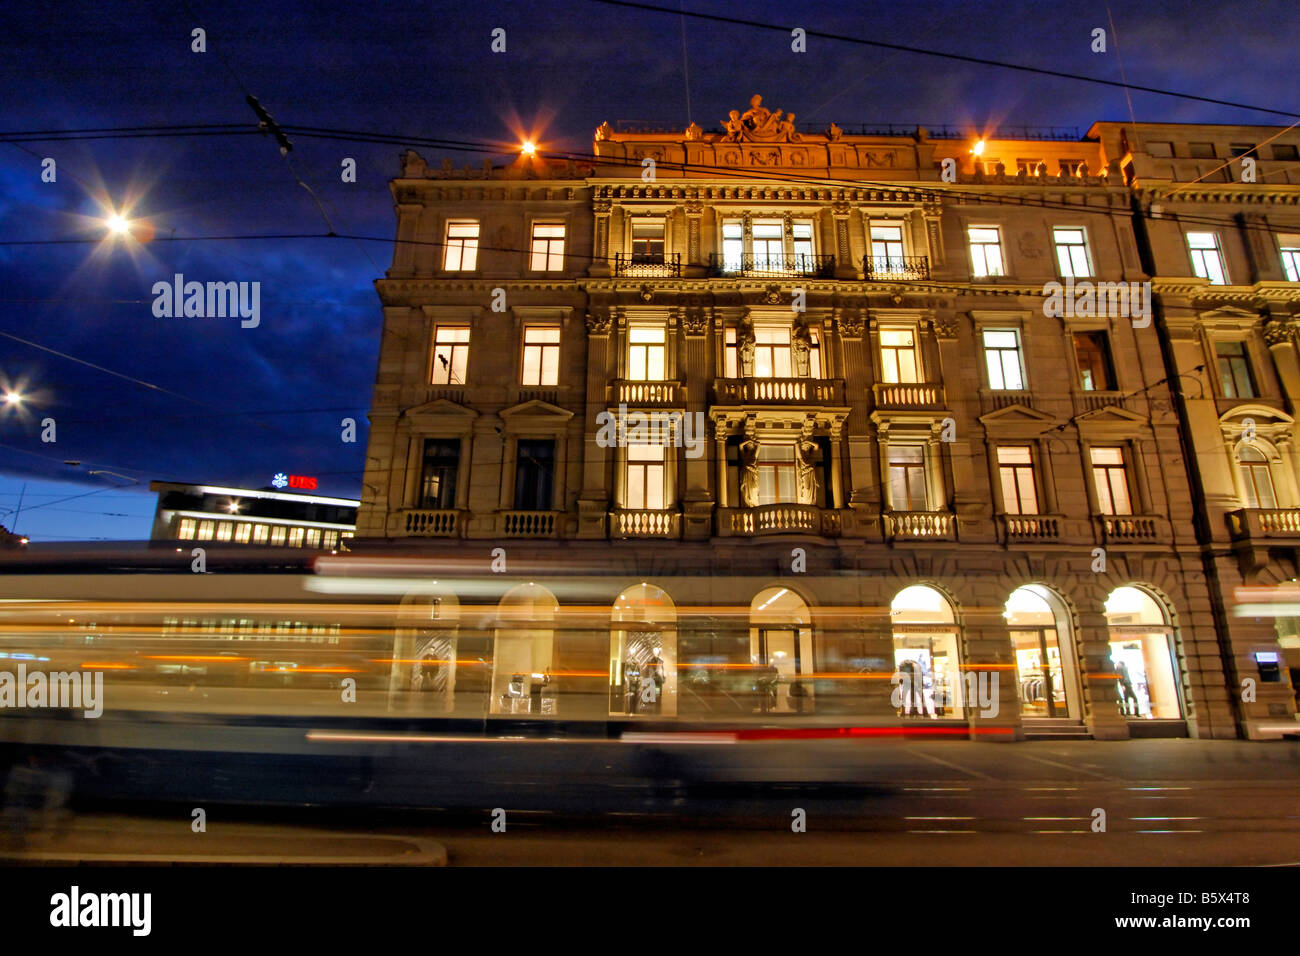 Bank UBS and Credit Suisse Bank at Paradeplatz Tram Zurich Switzerland - Stock Image